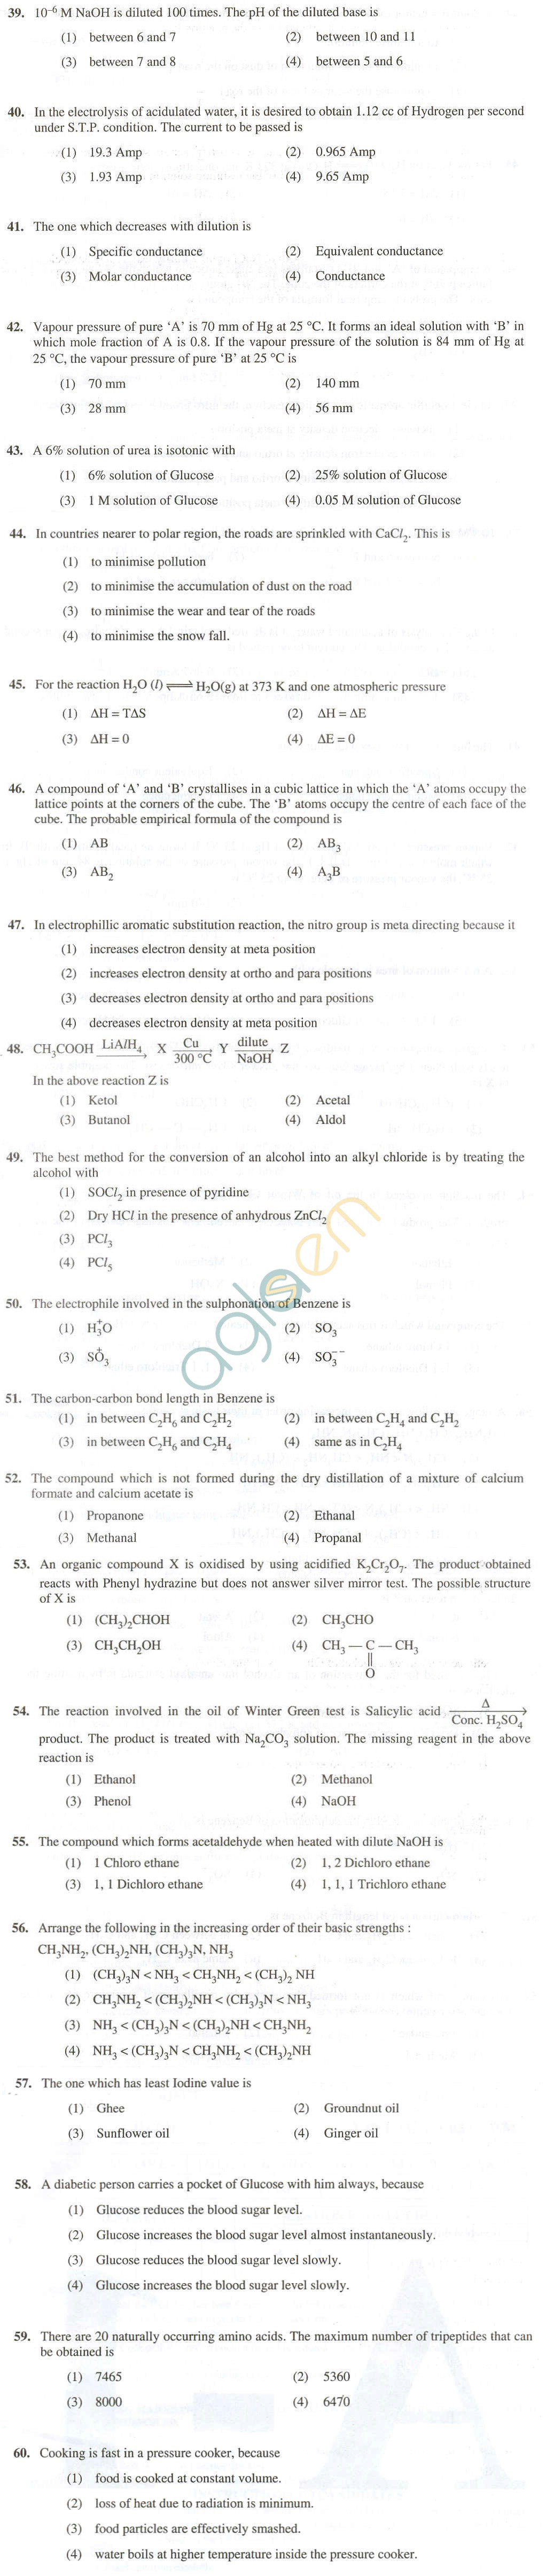 KCET 2009 Question Paper - Chemistry